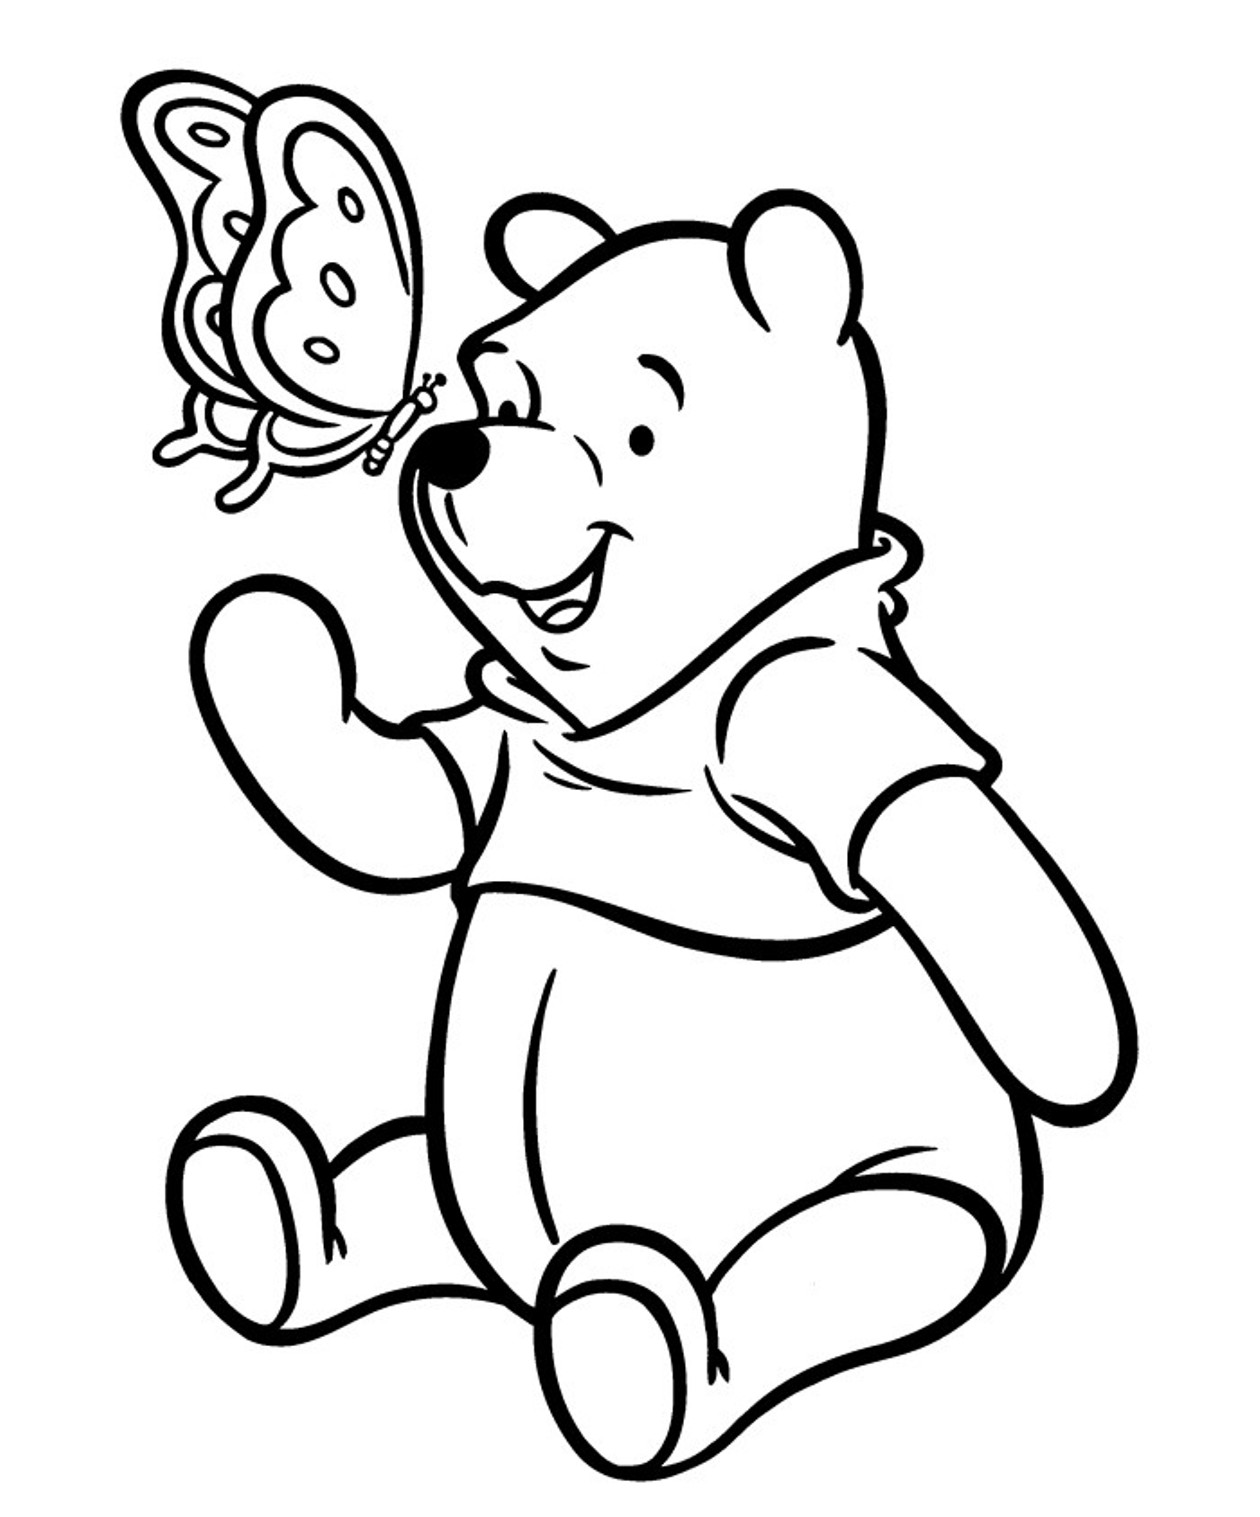 Winnie The Pooh Line Drawing at GetDrawings.com | Free for personal ...